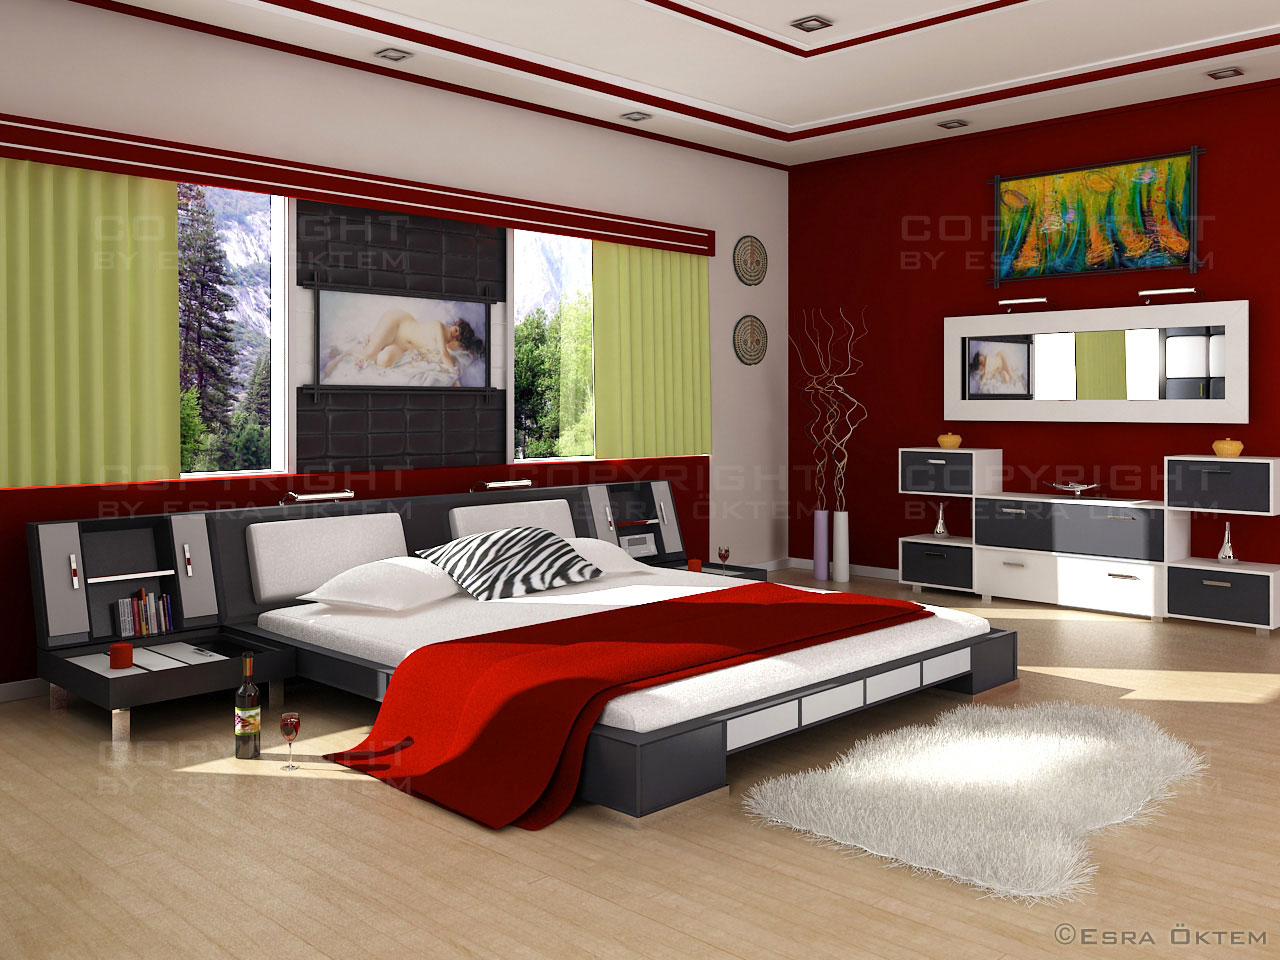 Charming Bedroom Decor Themes